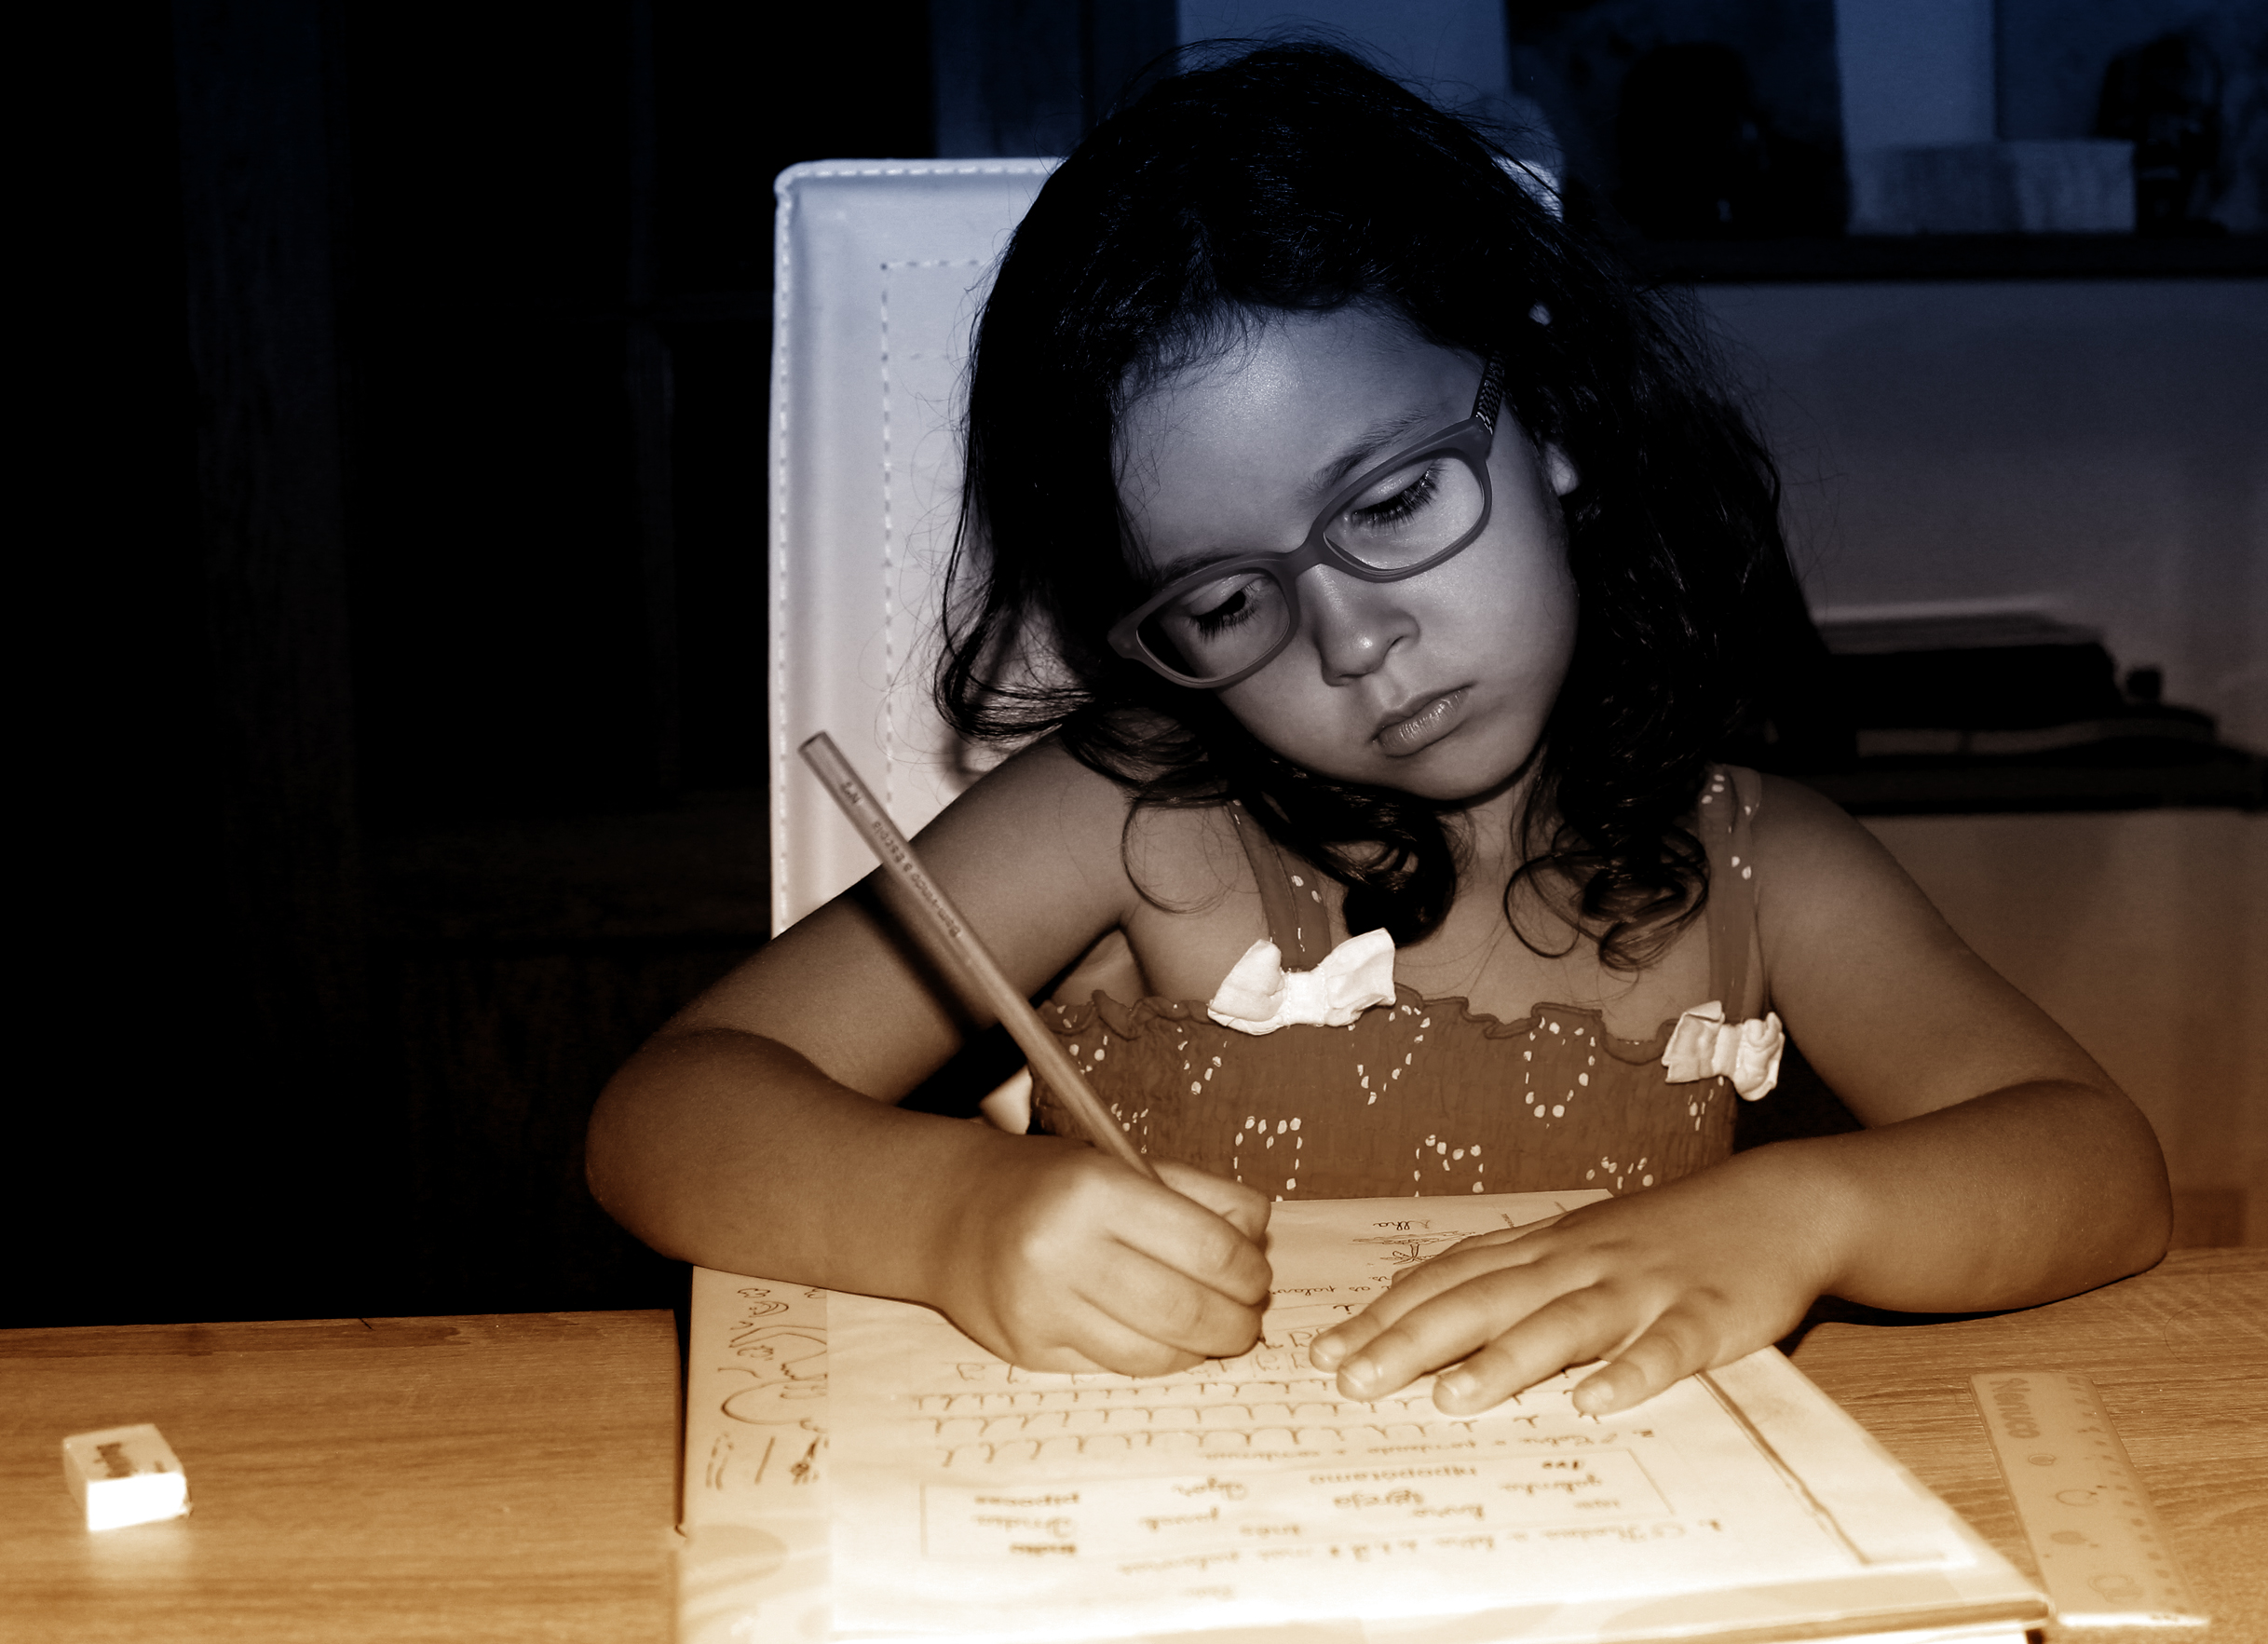 Little Girl Focused On Doing Homework, Active, Overall, Pigtails, Person, HQ Photo